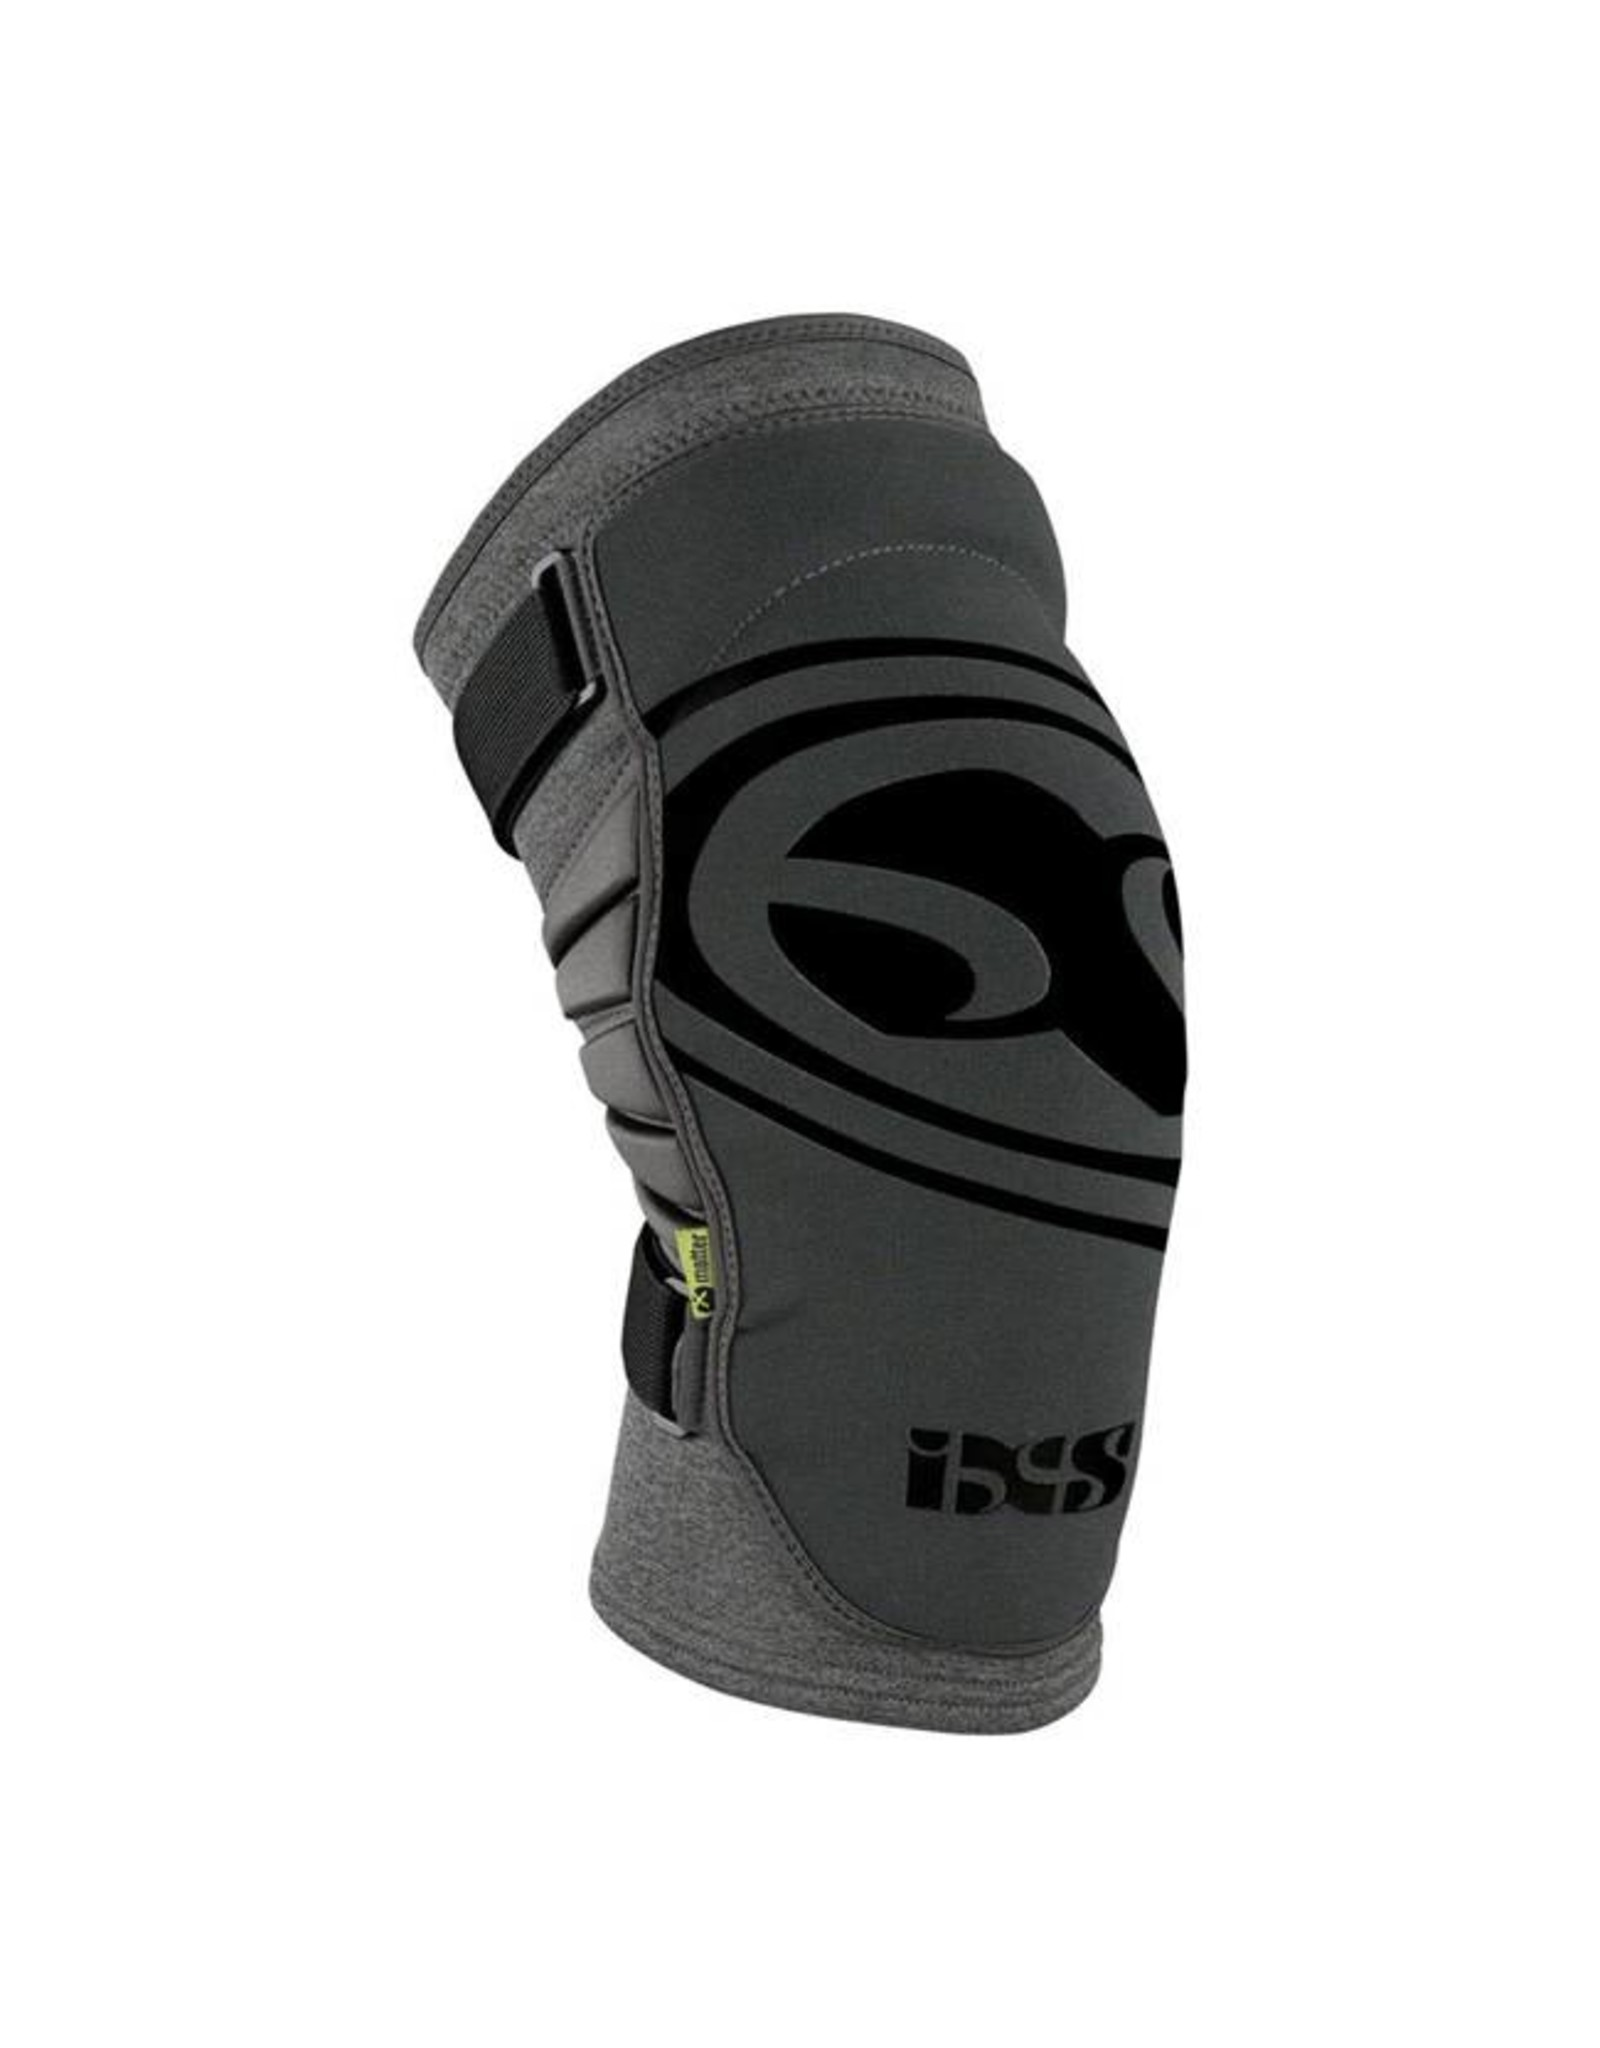 IXS iXS Carve Evo+ Knee Pads: Gray XL